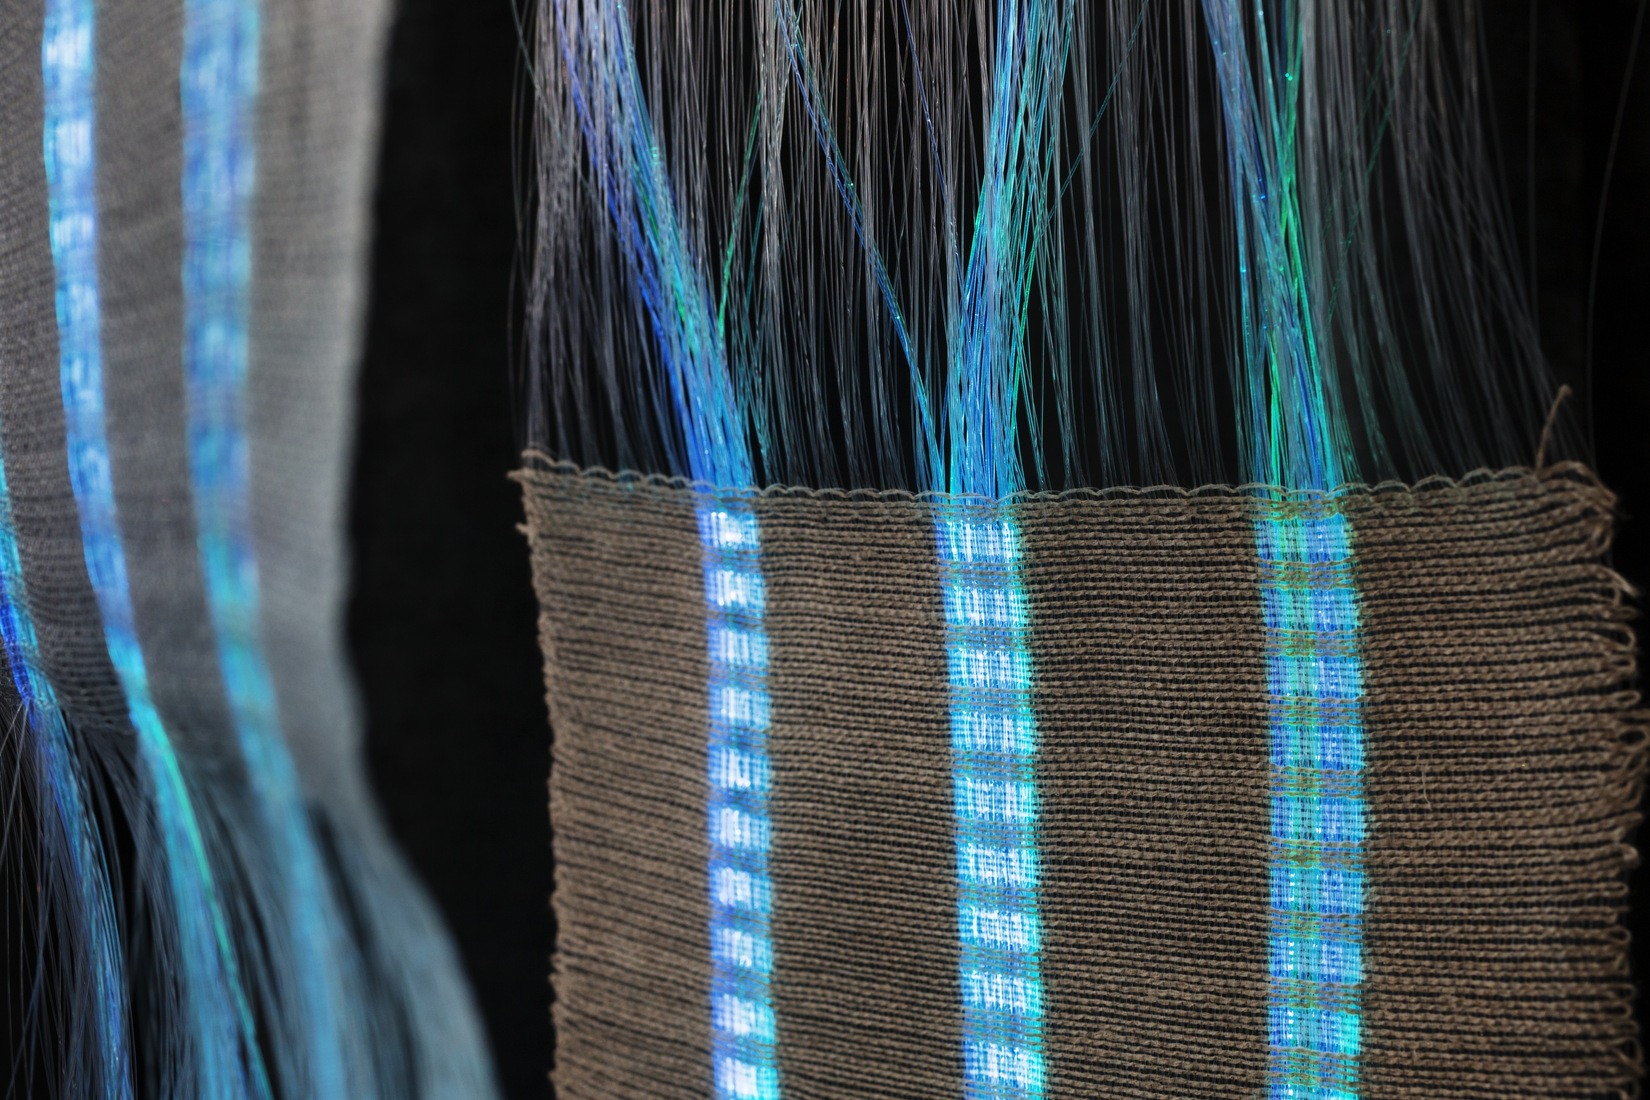 Textile in blue metal fibres